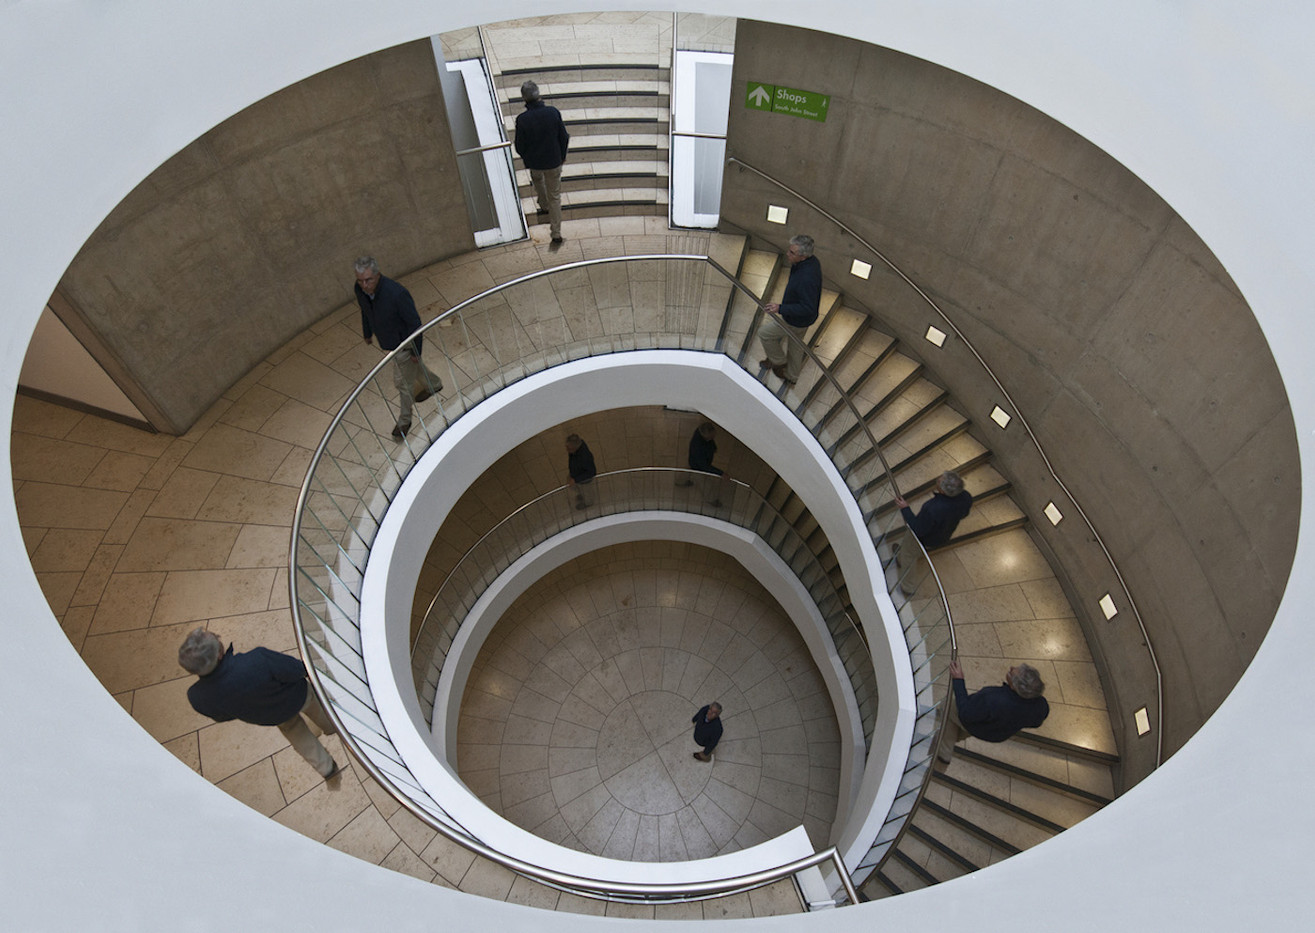 GROUP 1 17 ELLIPTICAL ILLUSION by Philip Smithies